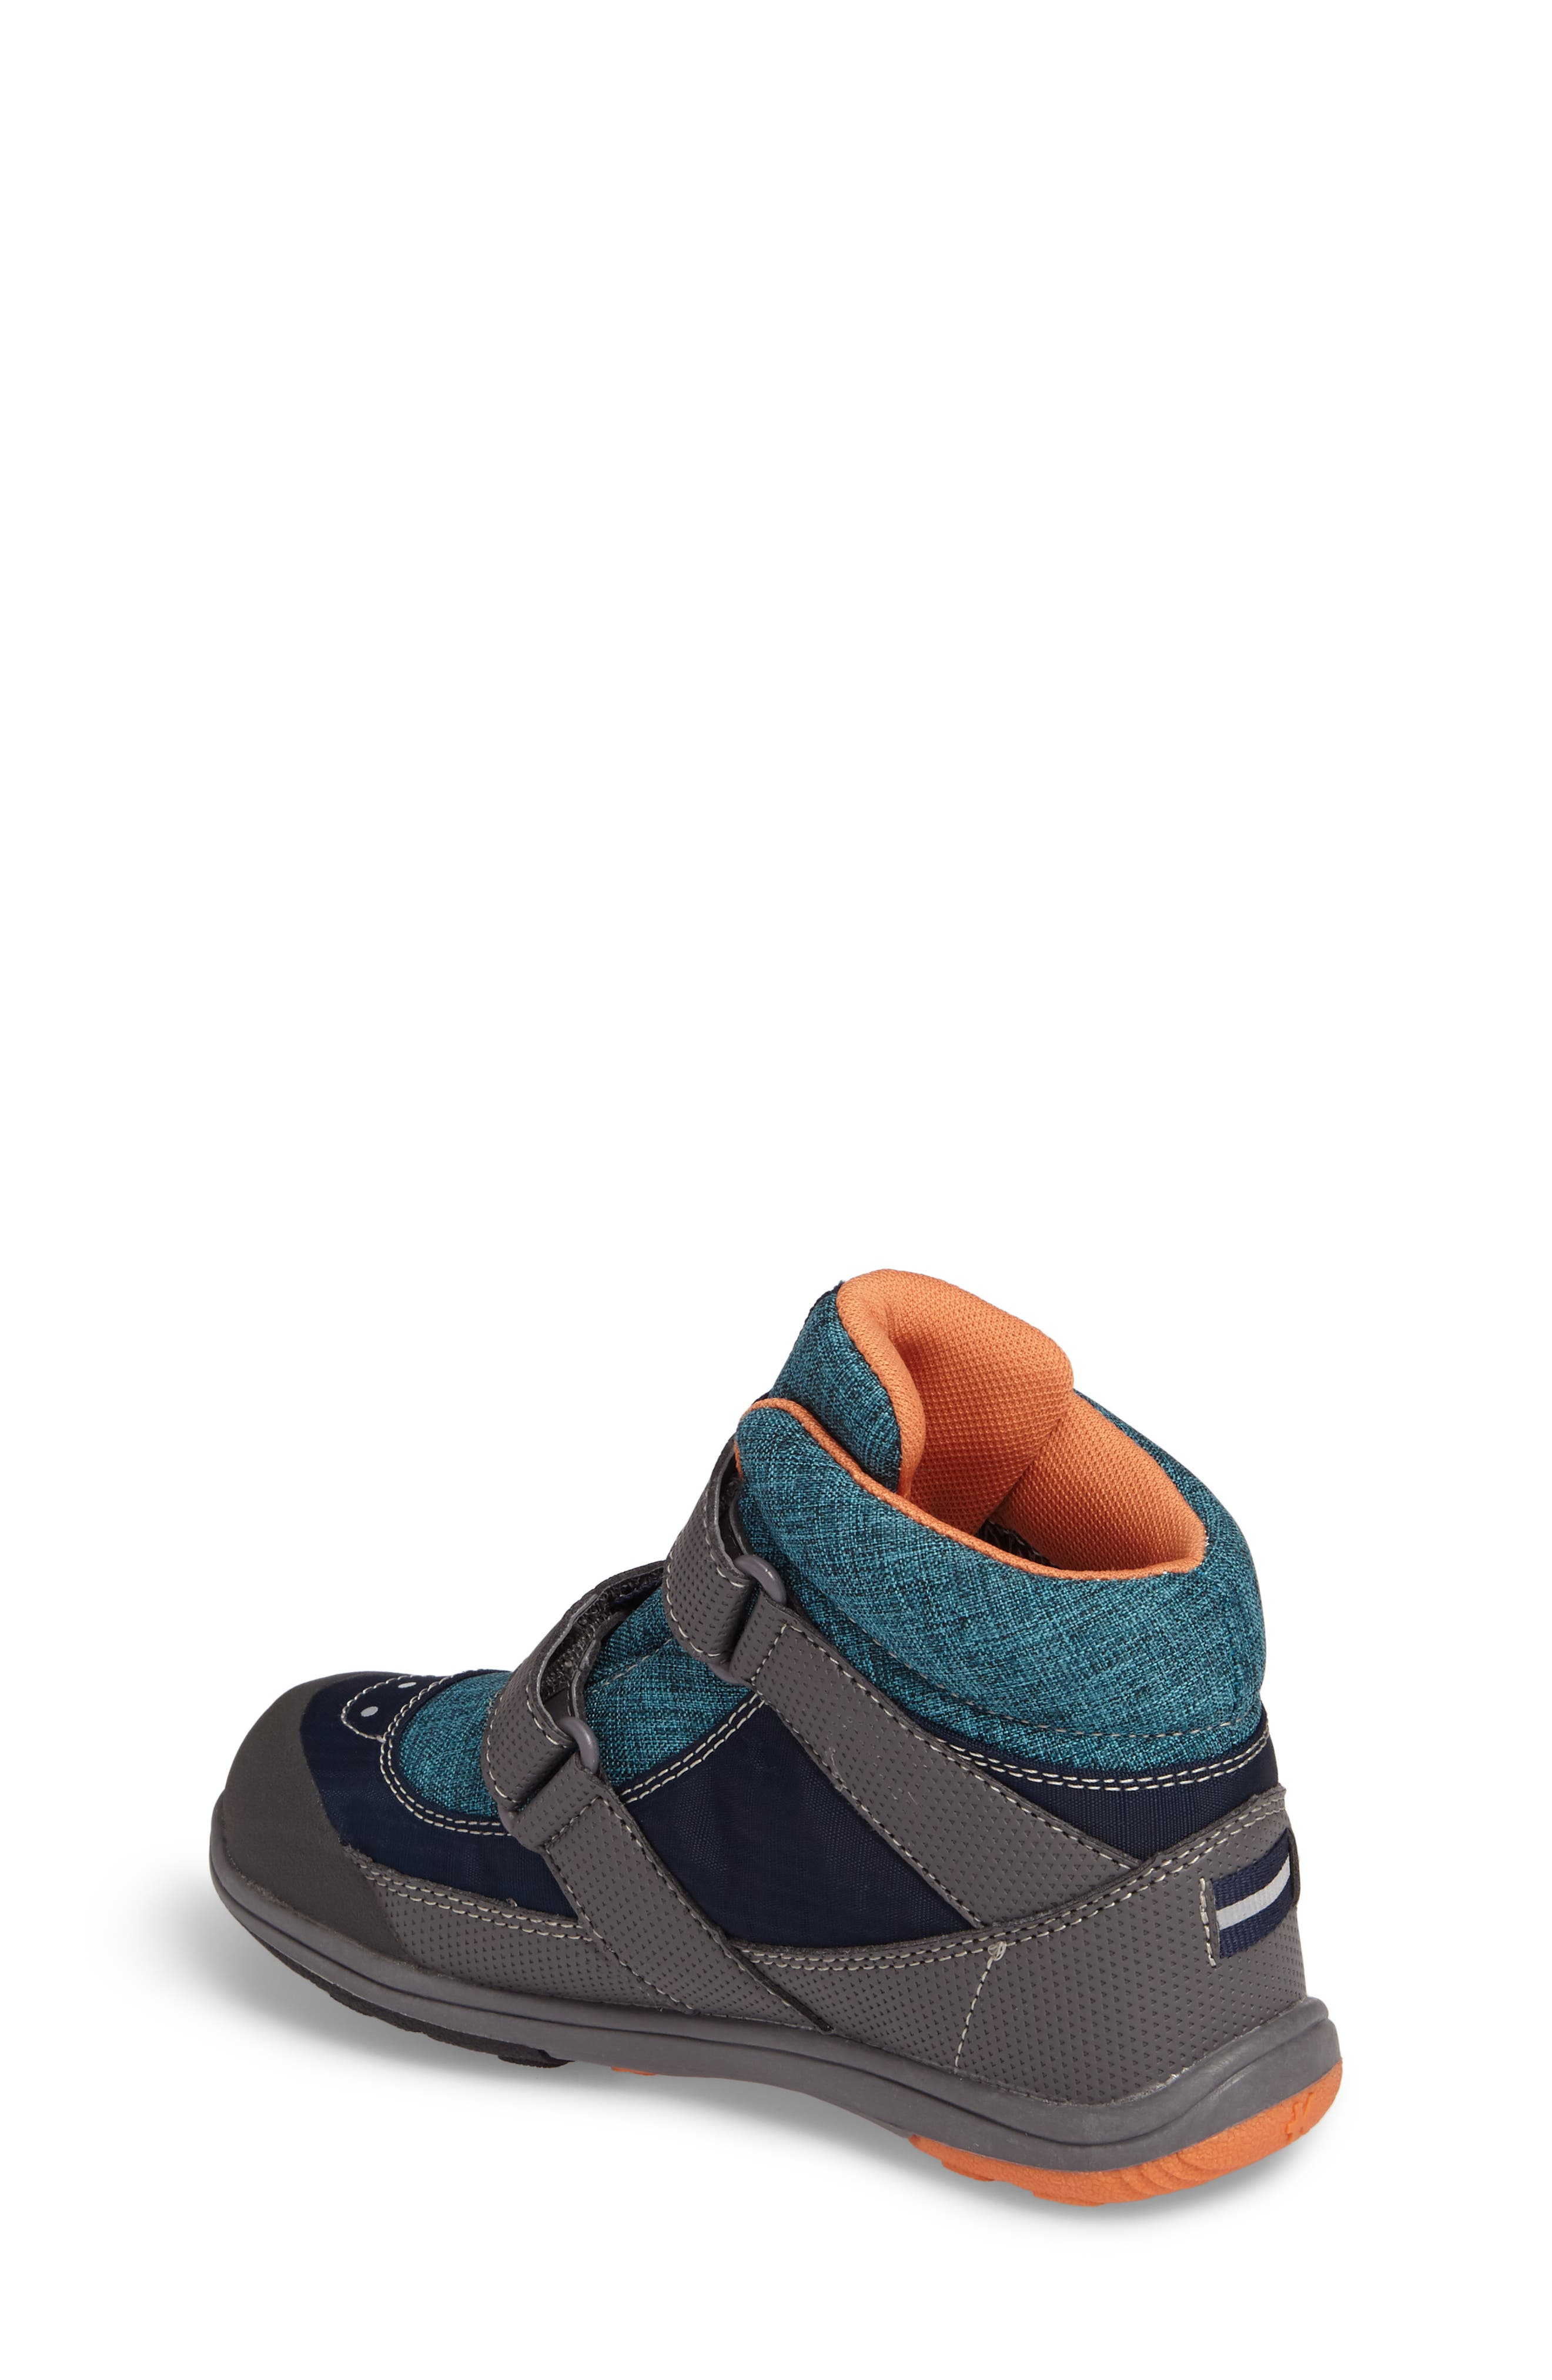 'Atlas' Waterproof Boot,                             Alternate thumbnail 4, color,